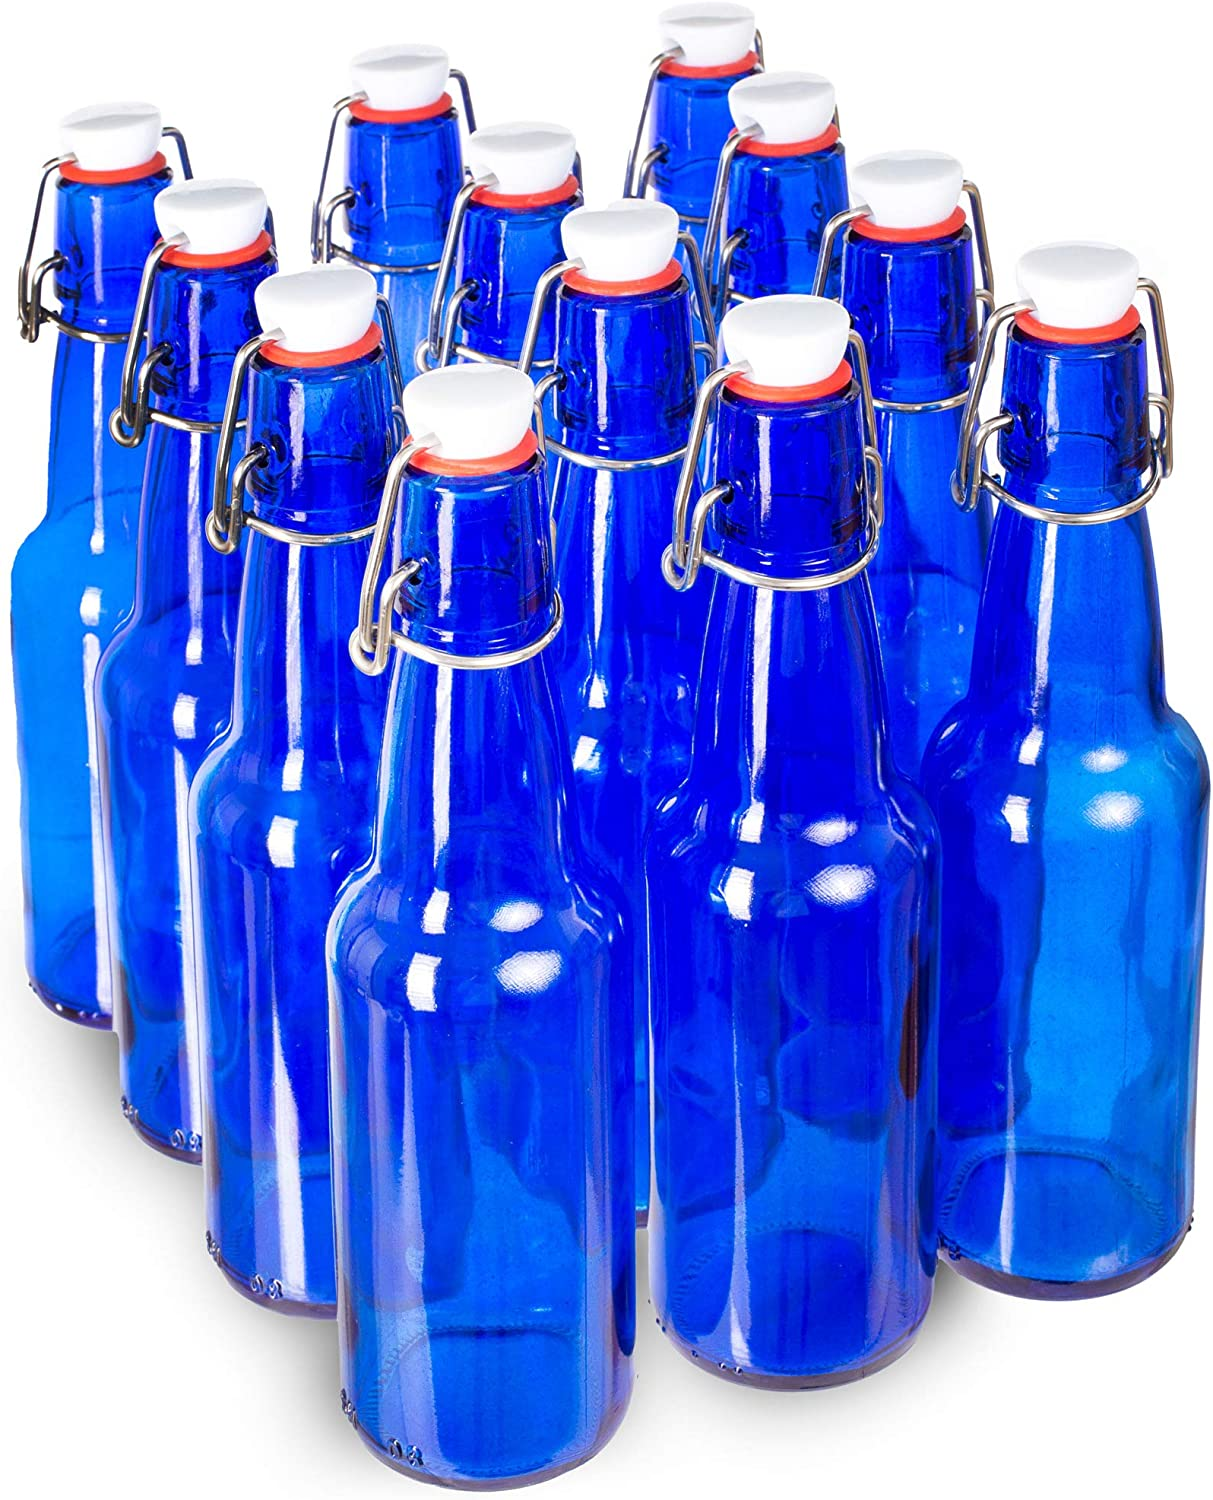 11 oz. Blue Glass New item Grolsch Beer with Seal Airtight - Bottles New item Swin